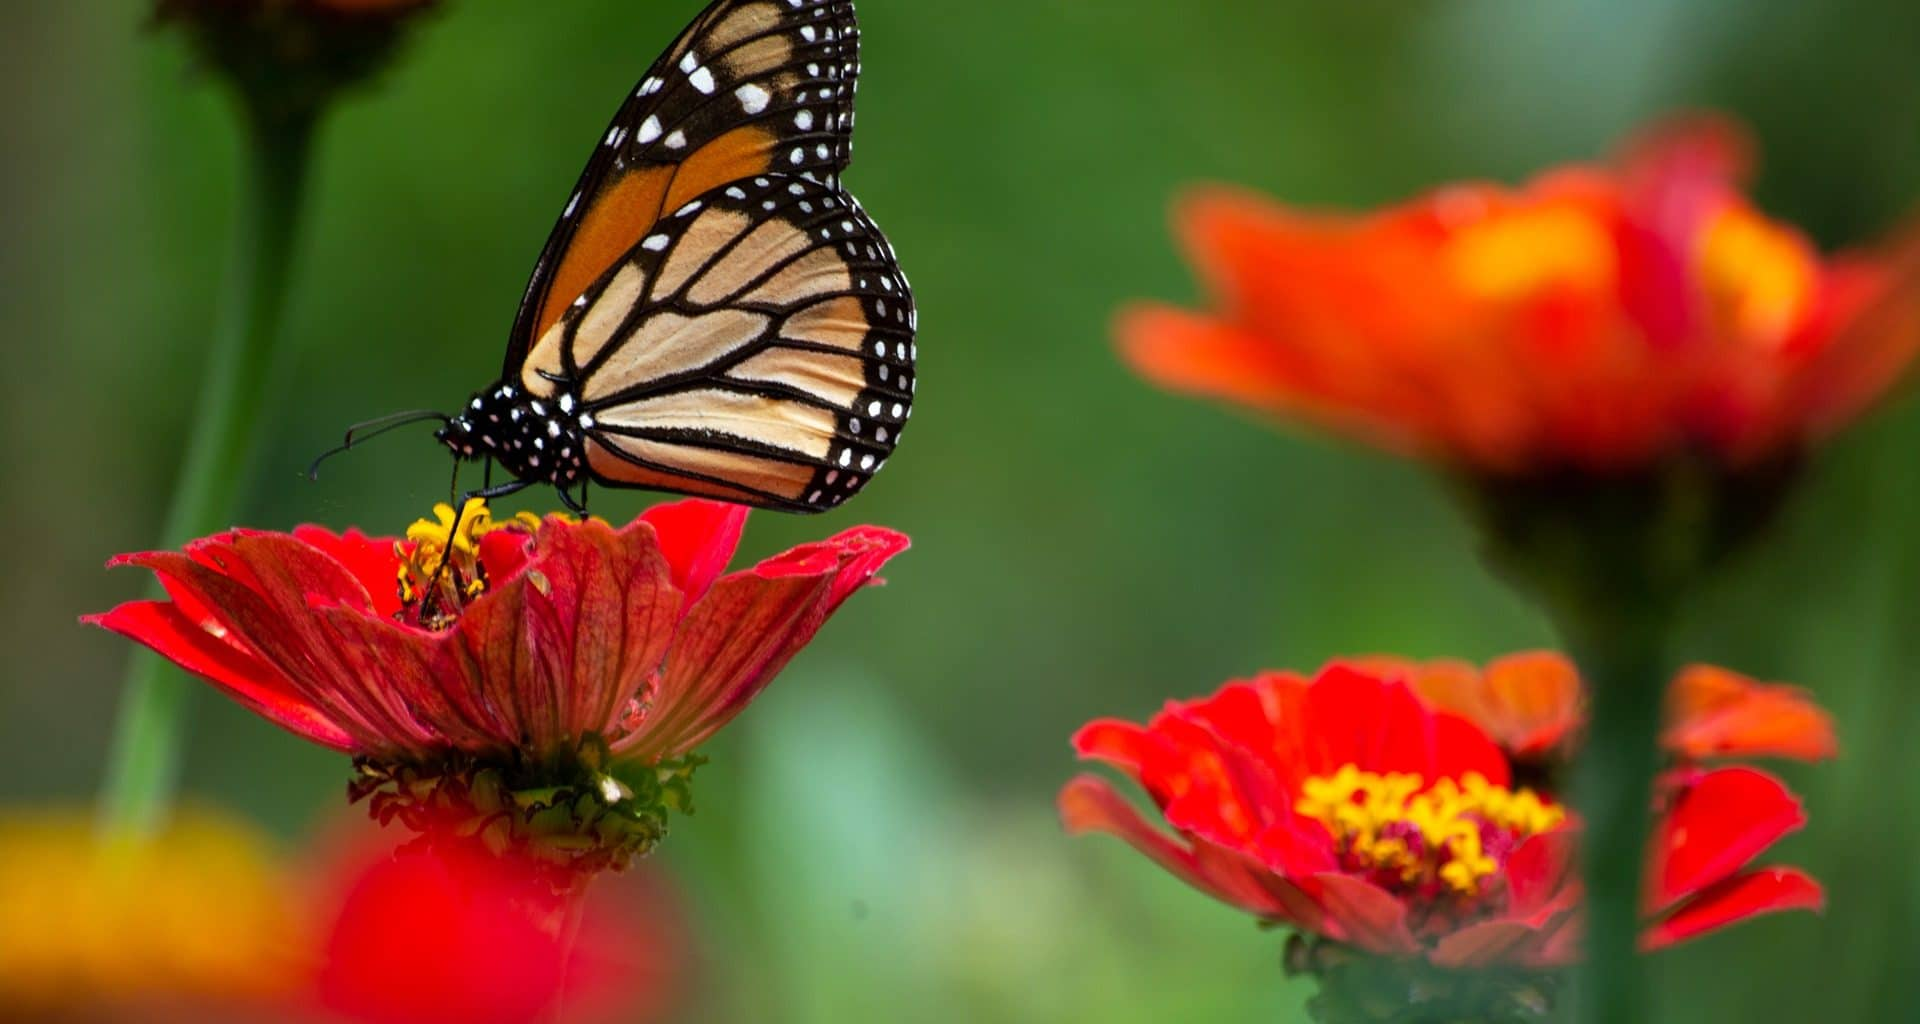 Butterfly Facts - Featured Image